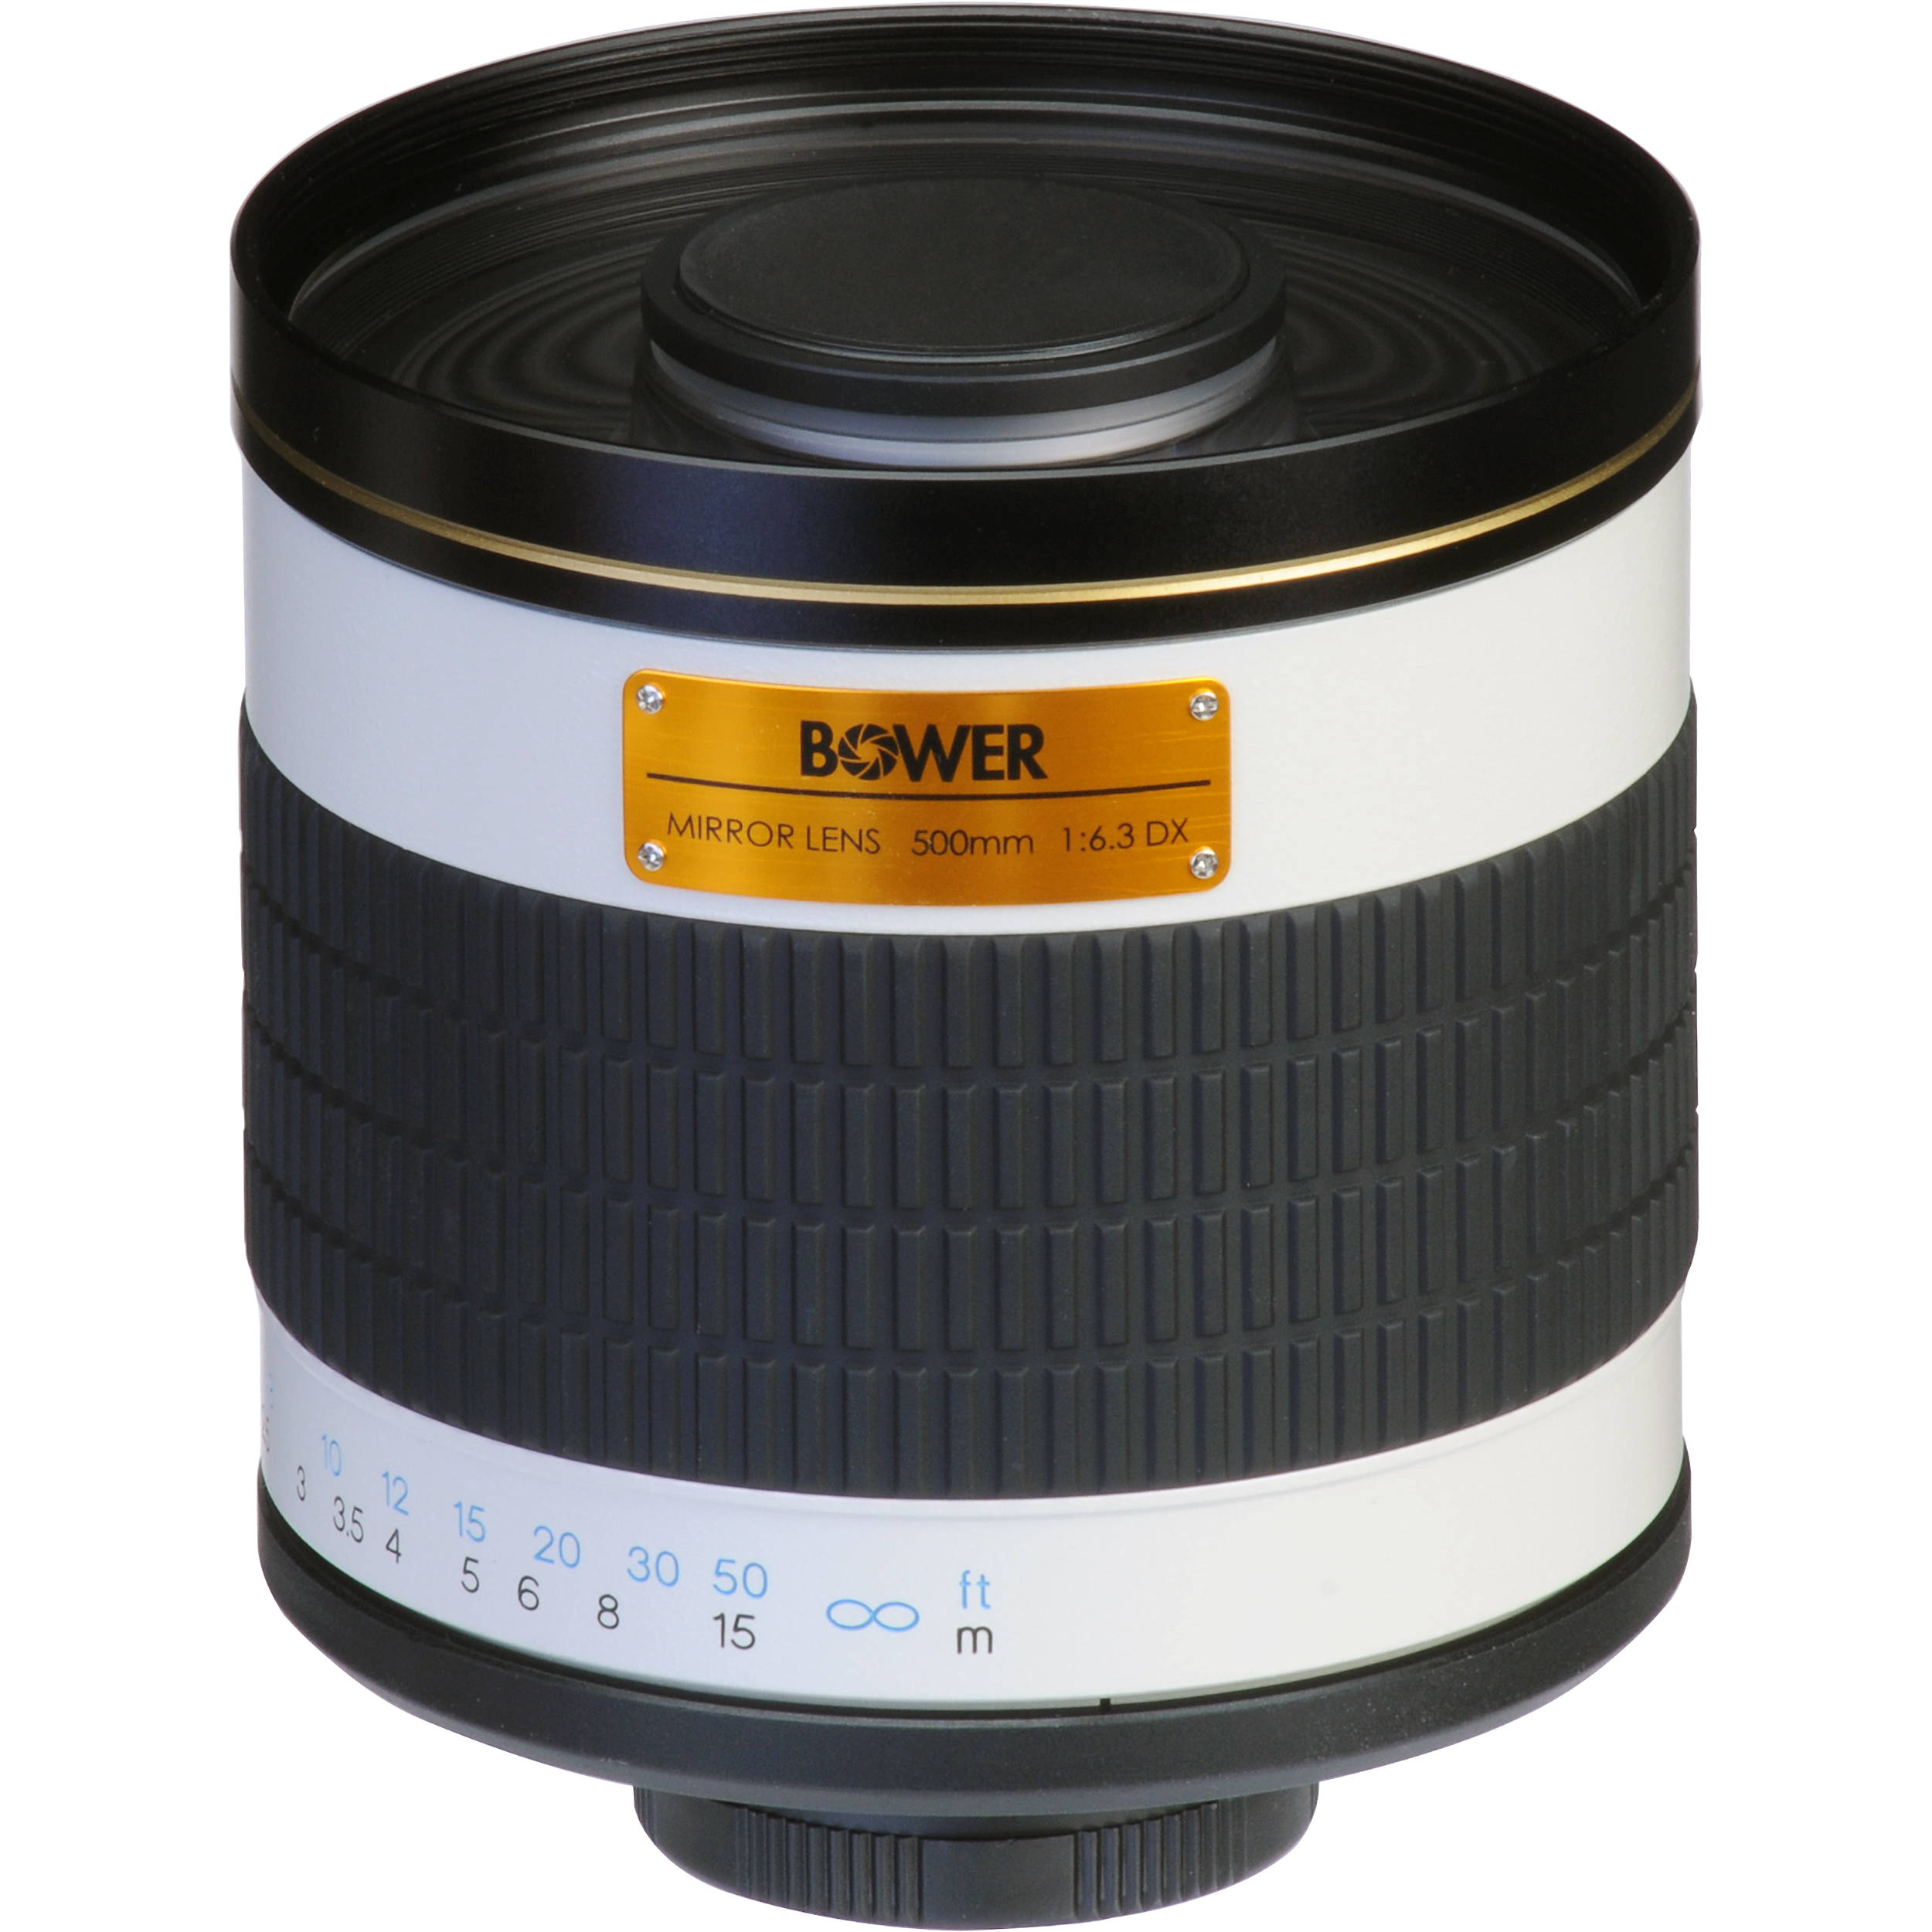 M Rokinon 500mm telephoto mirror lens